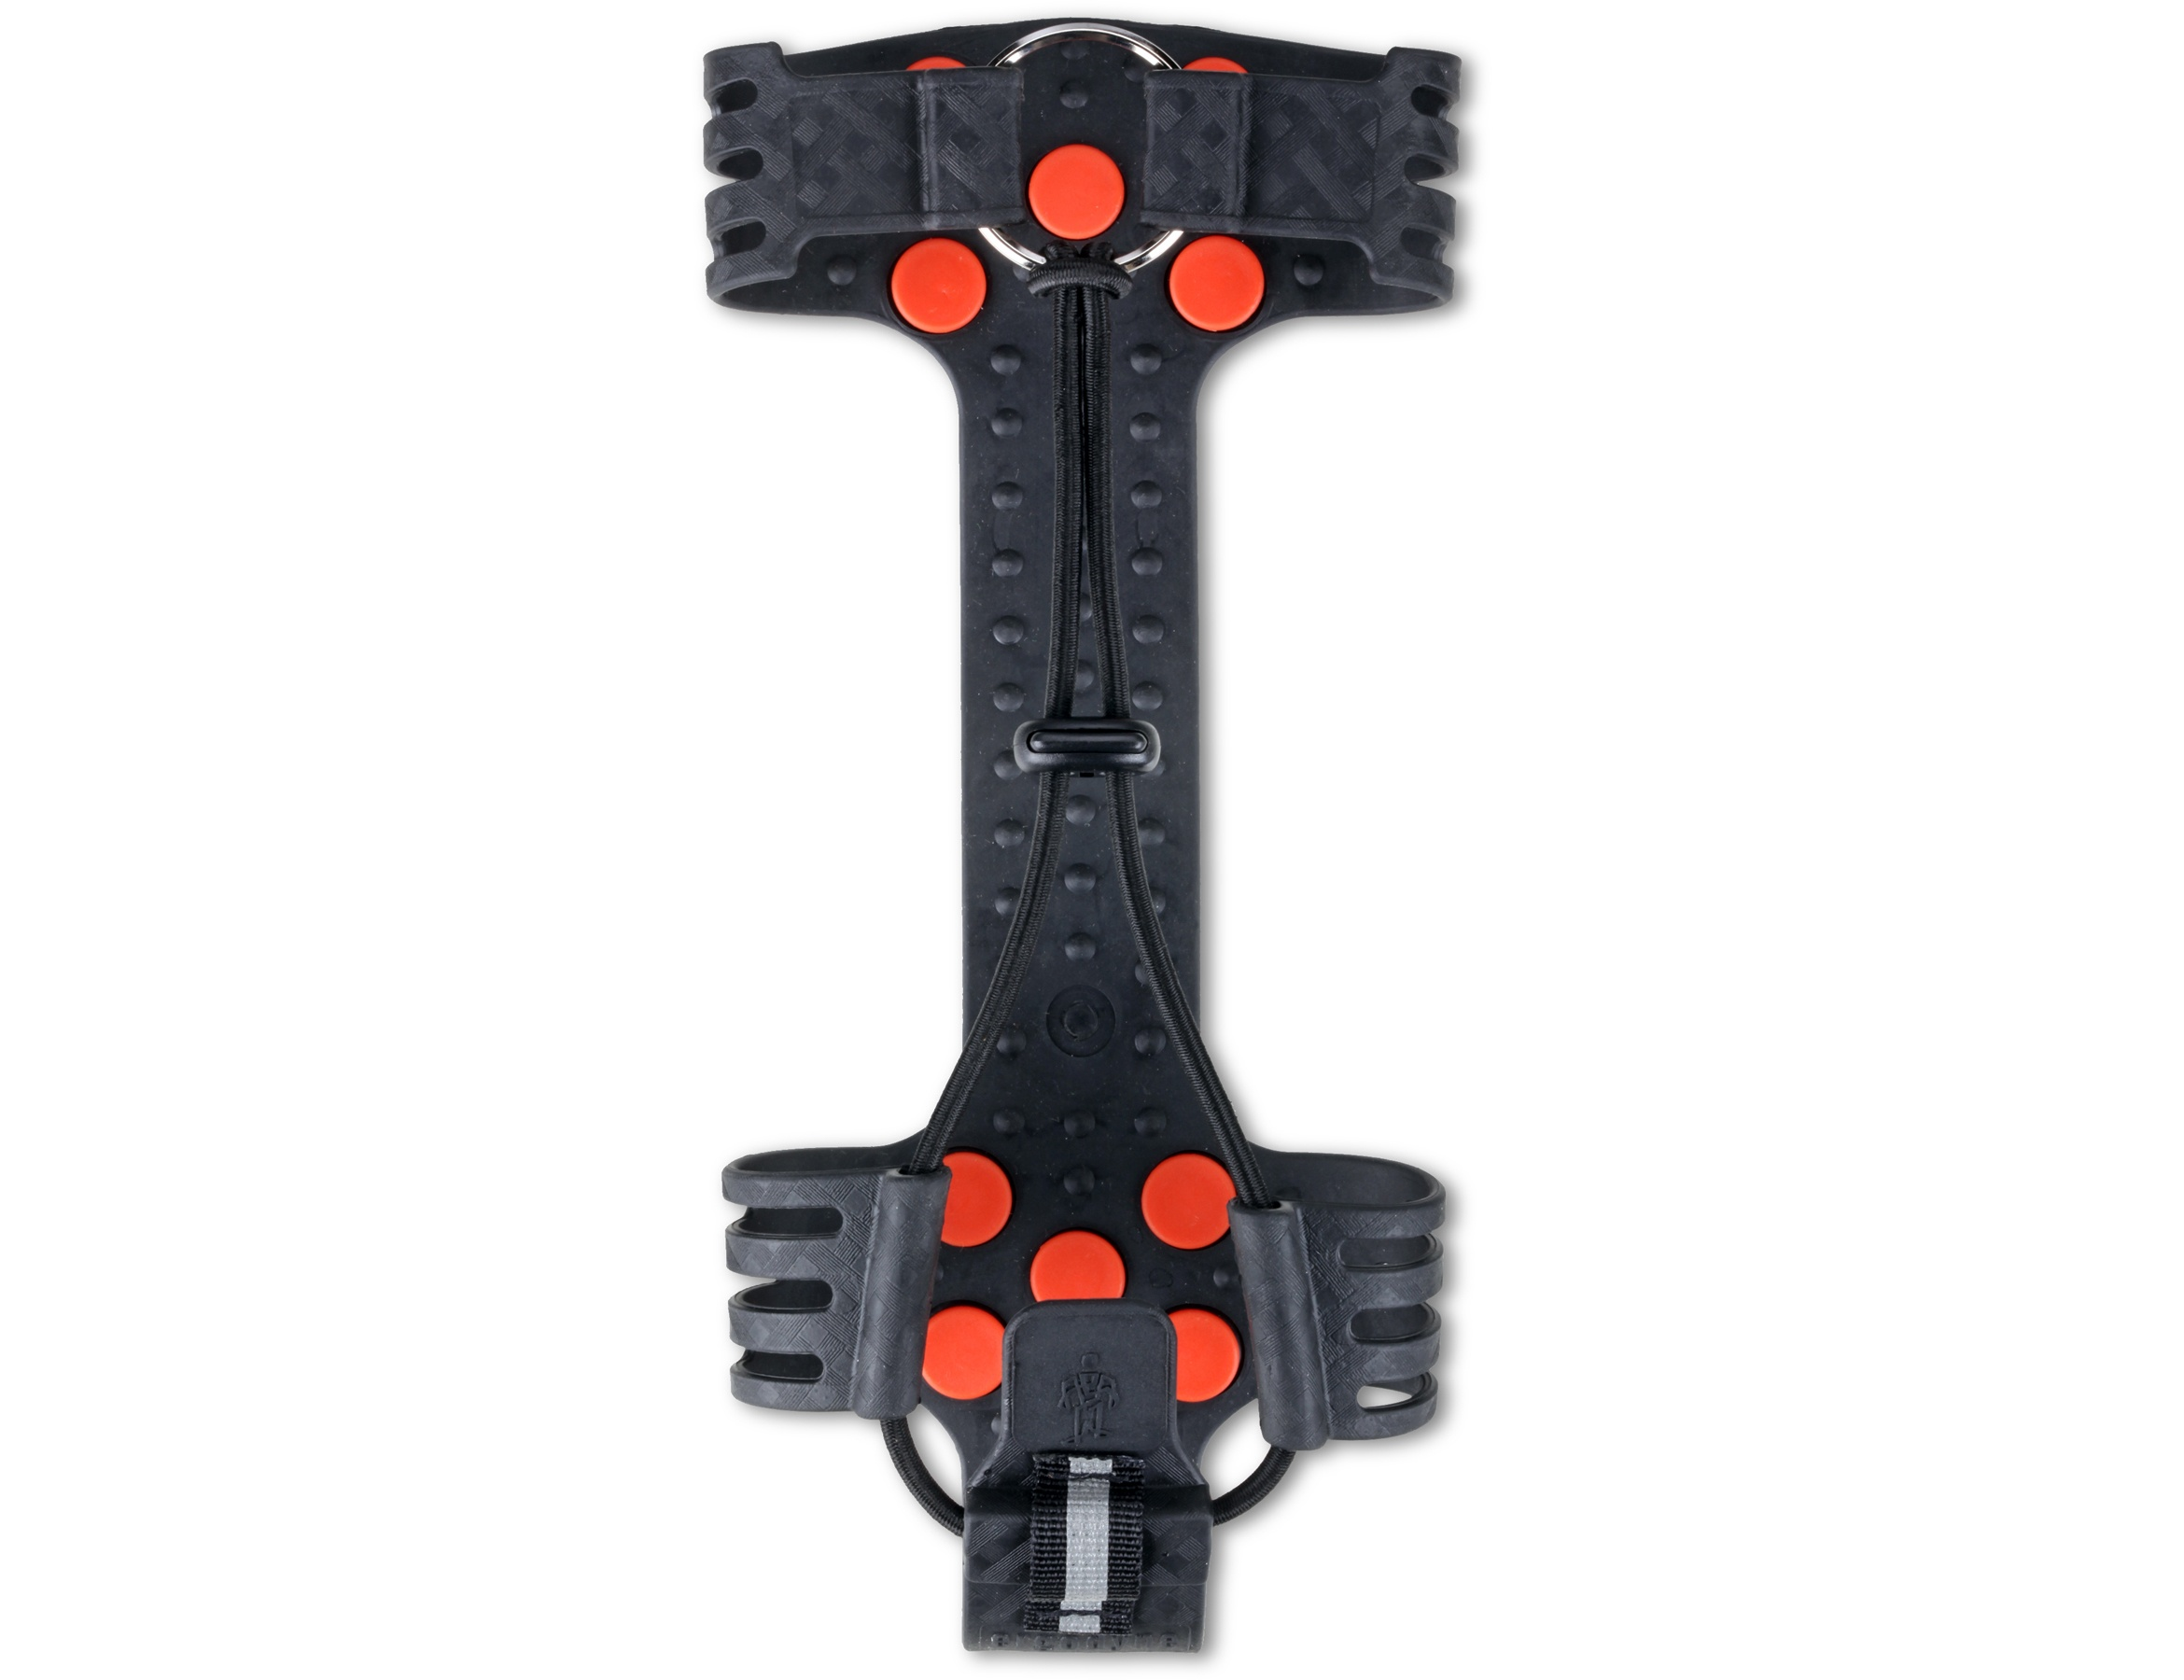 Ergodyne 6310 Trex Adjustable Ice Traction Device